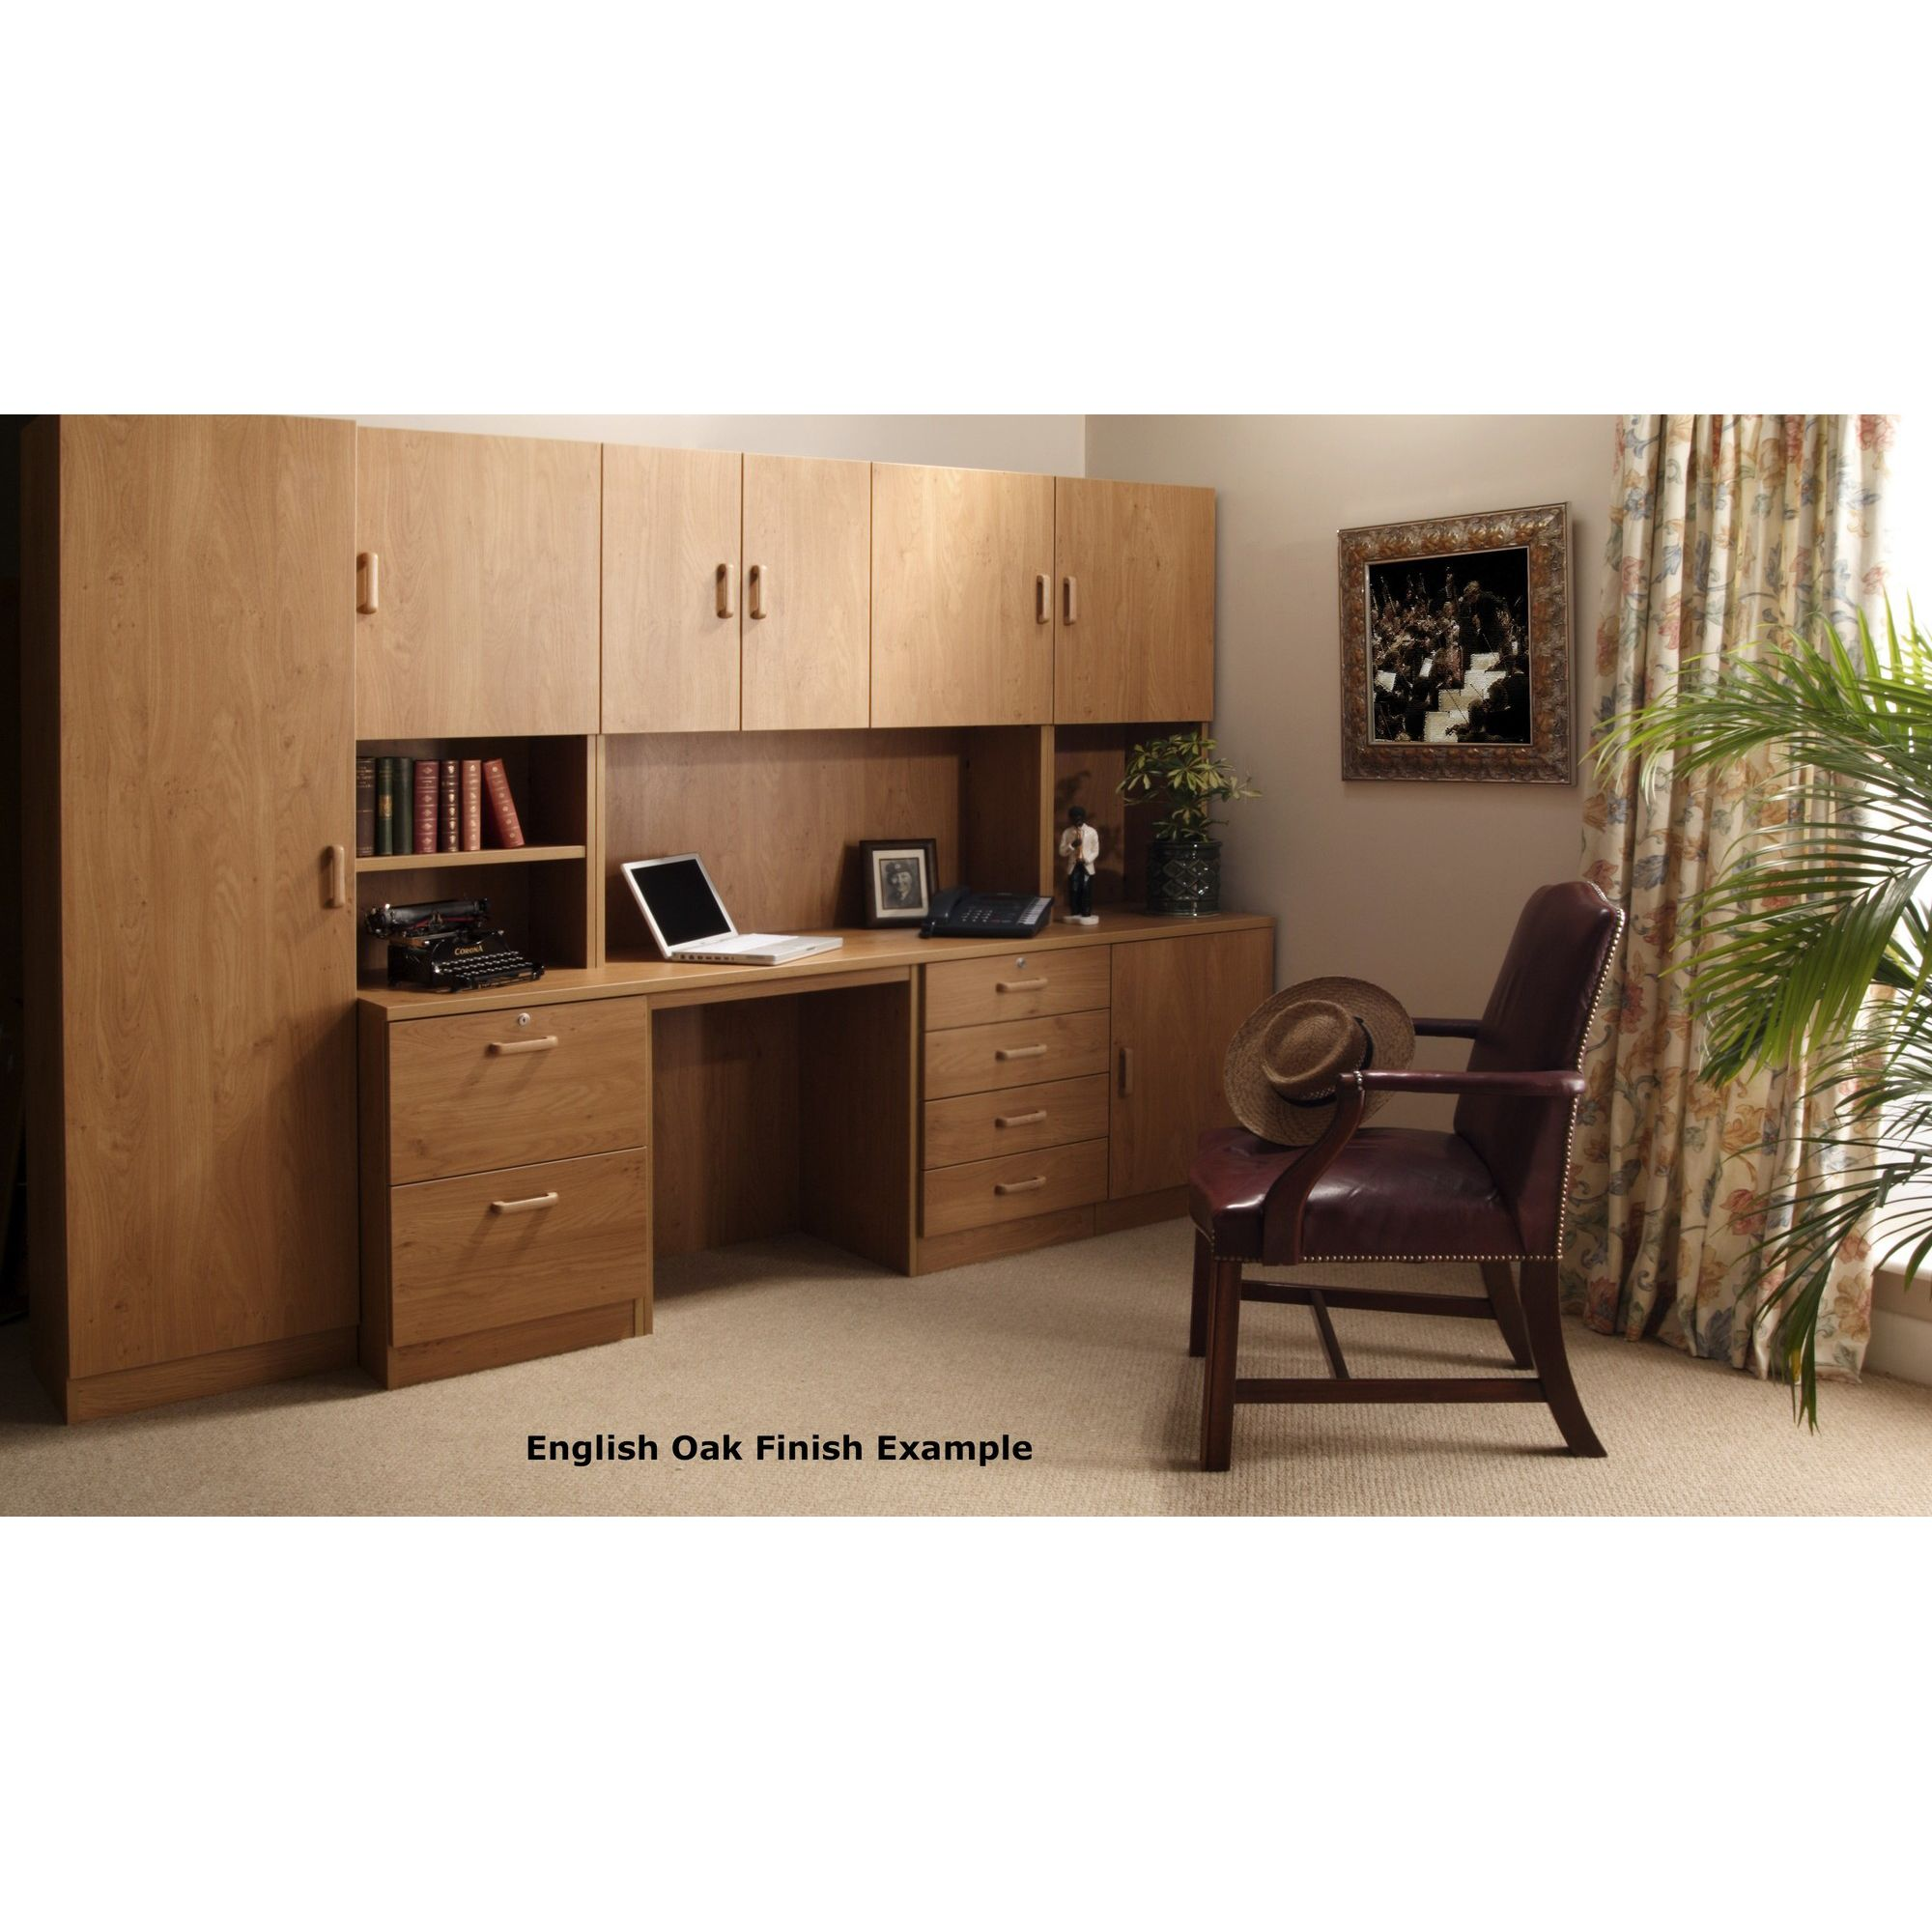 Enduro Two Drawer Wooden Filing Cabinet - Walnut at Tesco Direct